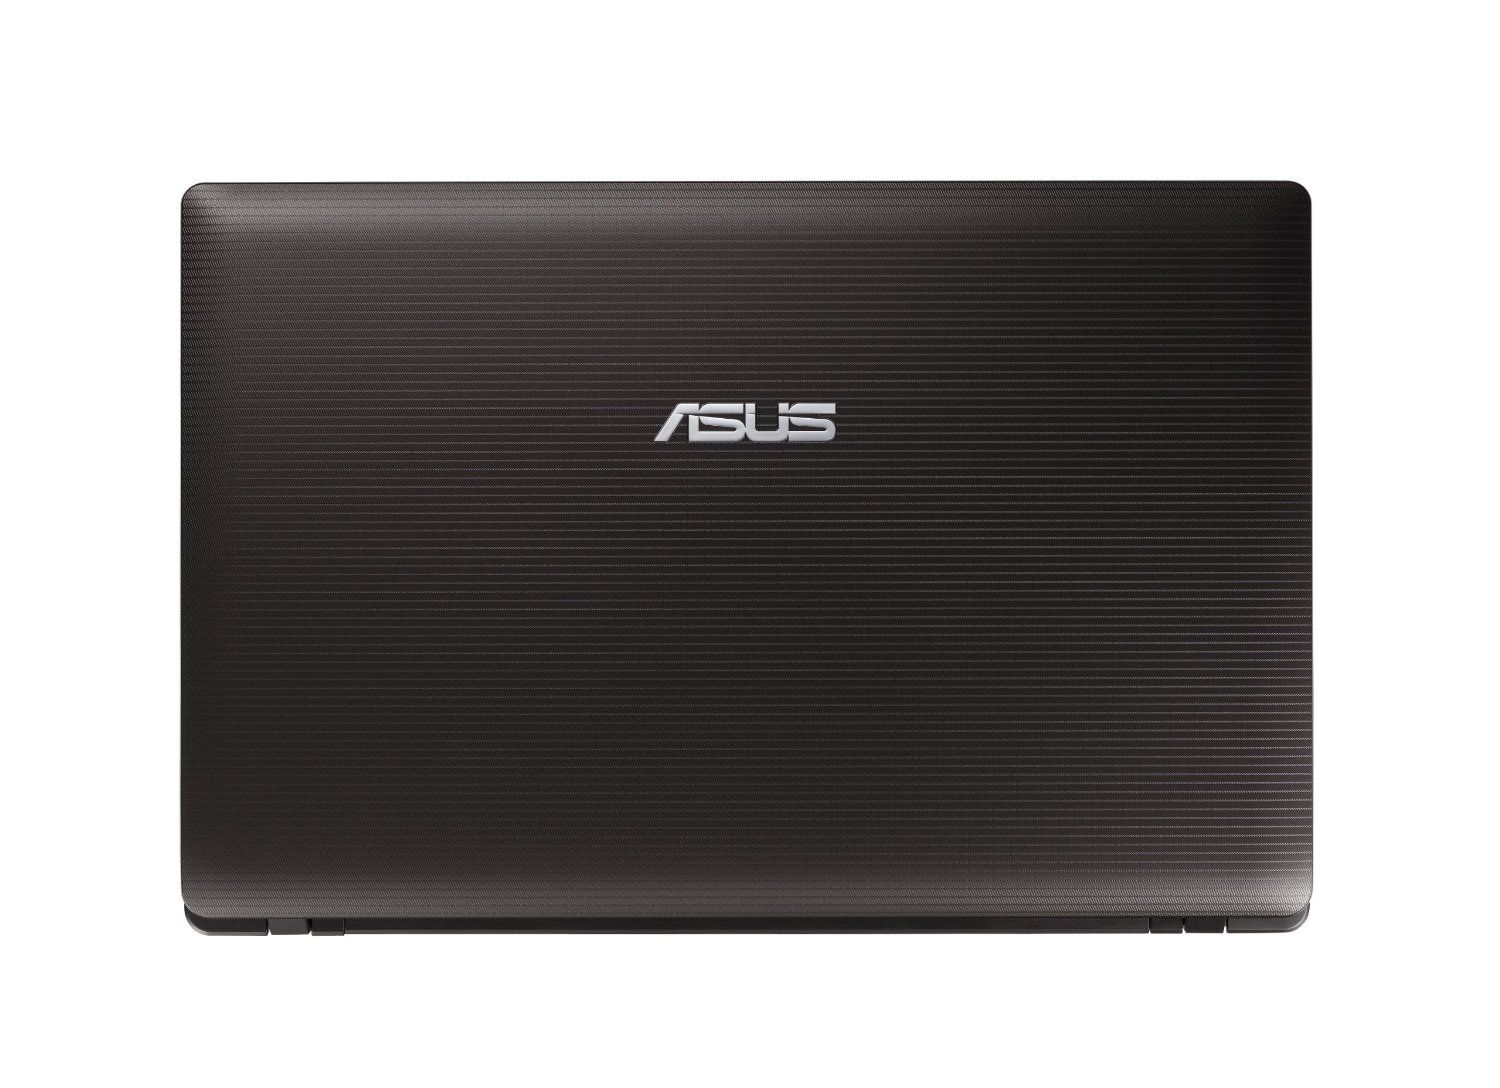 ASUS K53SD-SX809M - 3